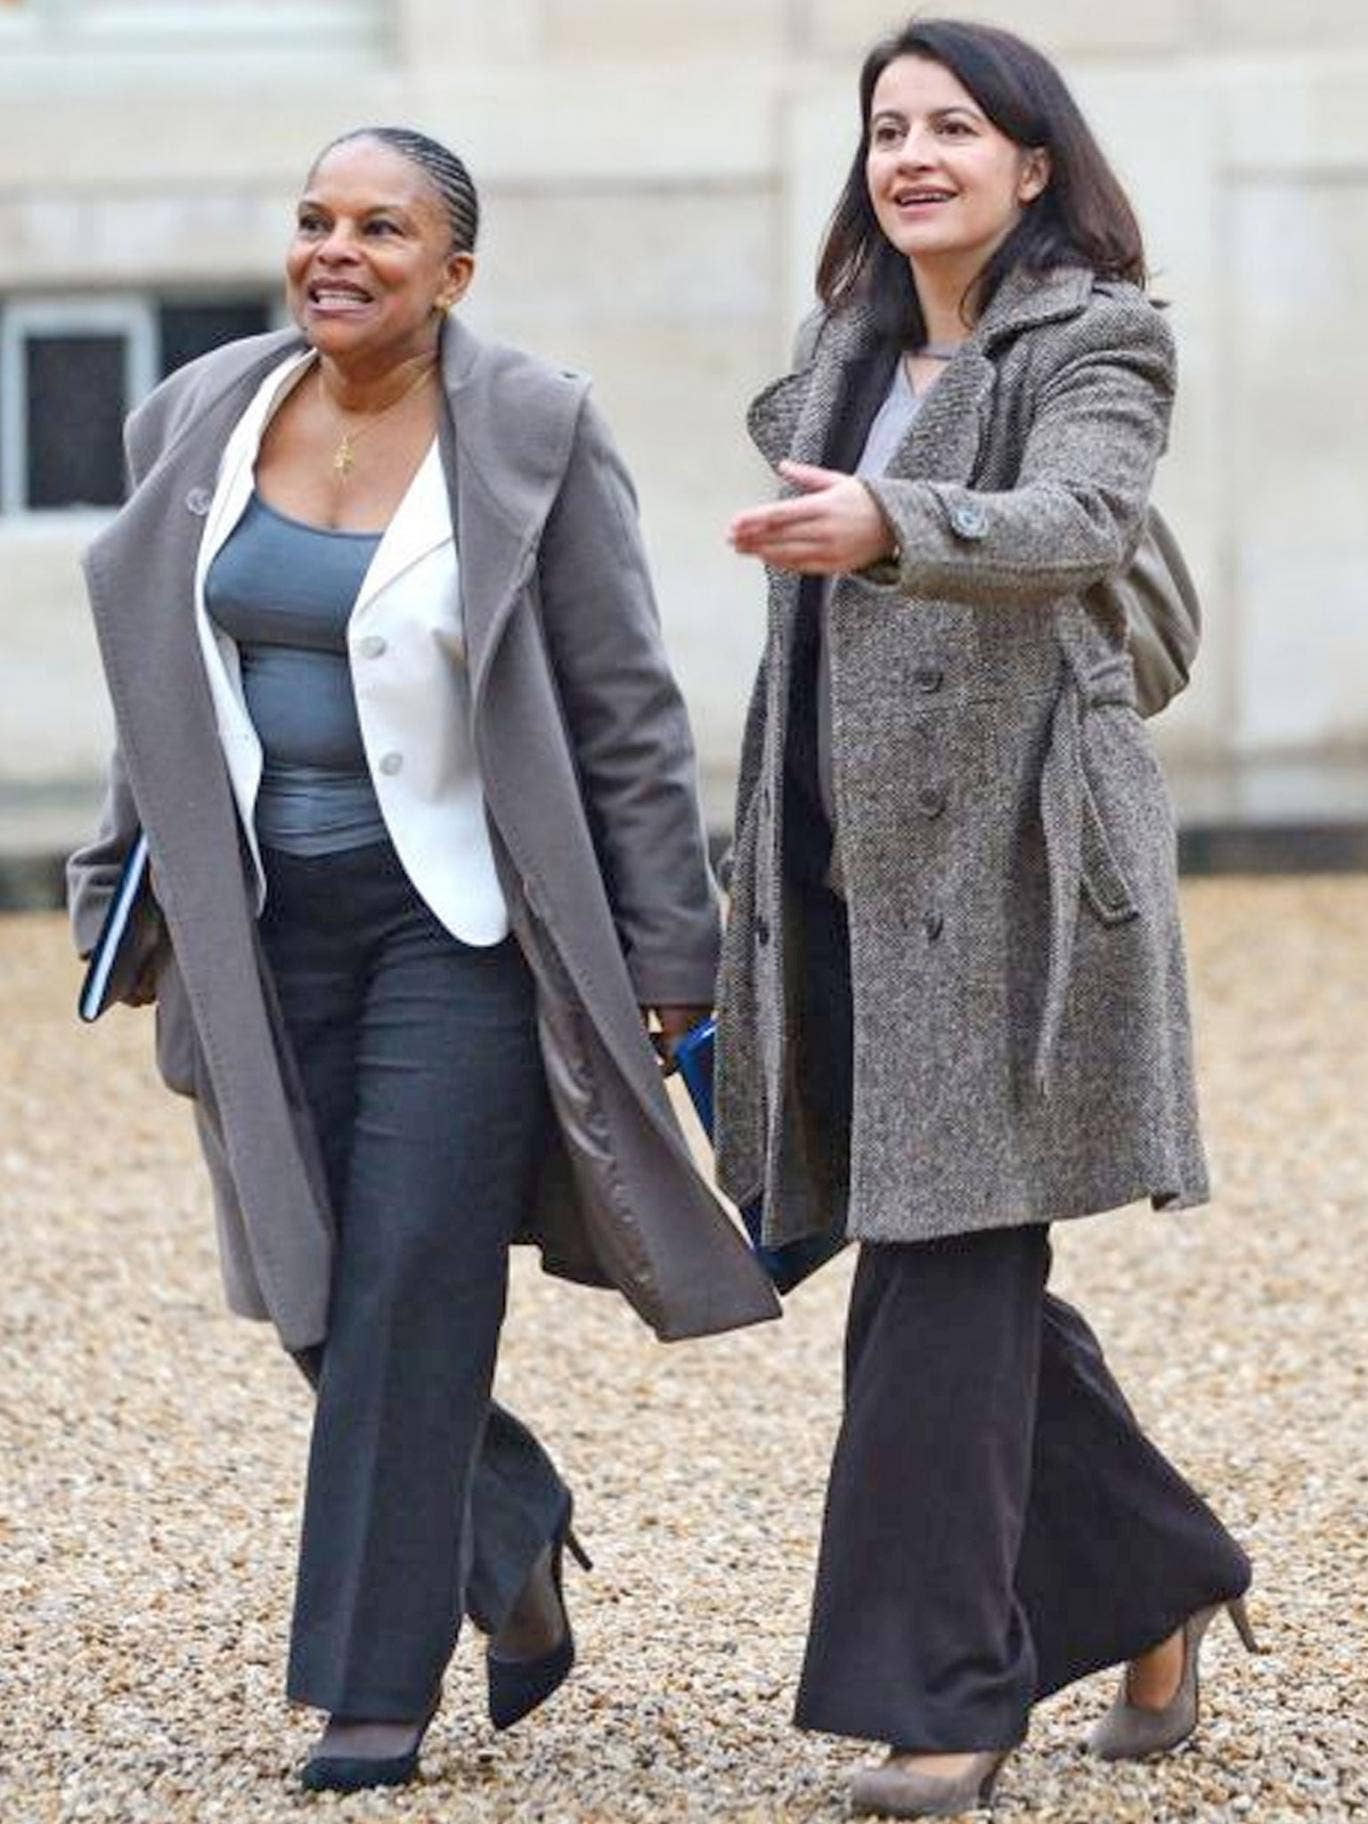 French ministers Cecile Duflot, right, and Christiane Taubira at the Elysee Palace on Sunday – in trousers